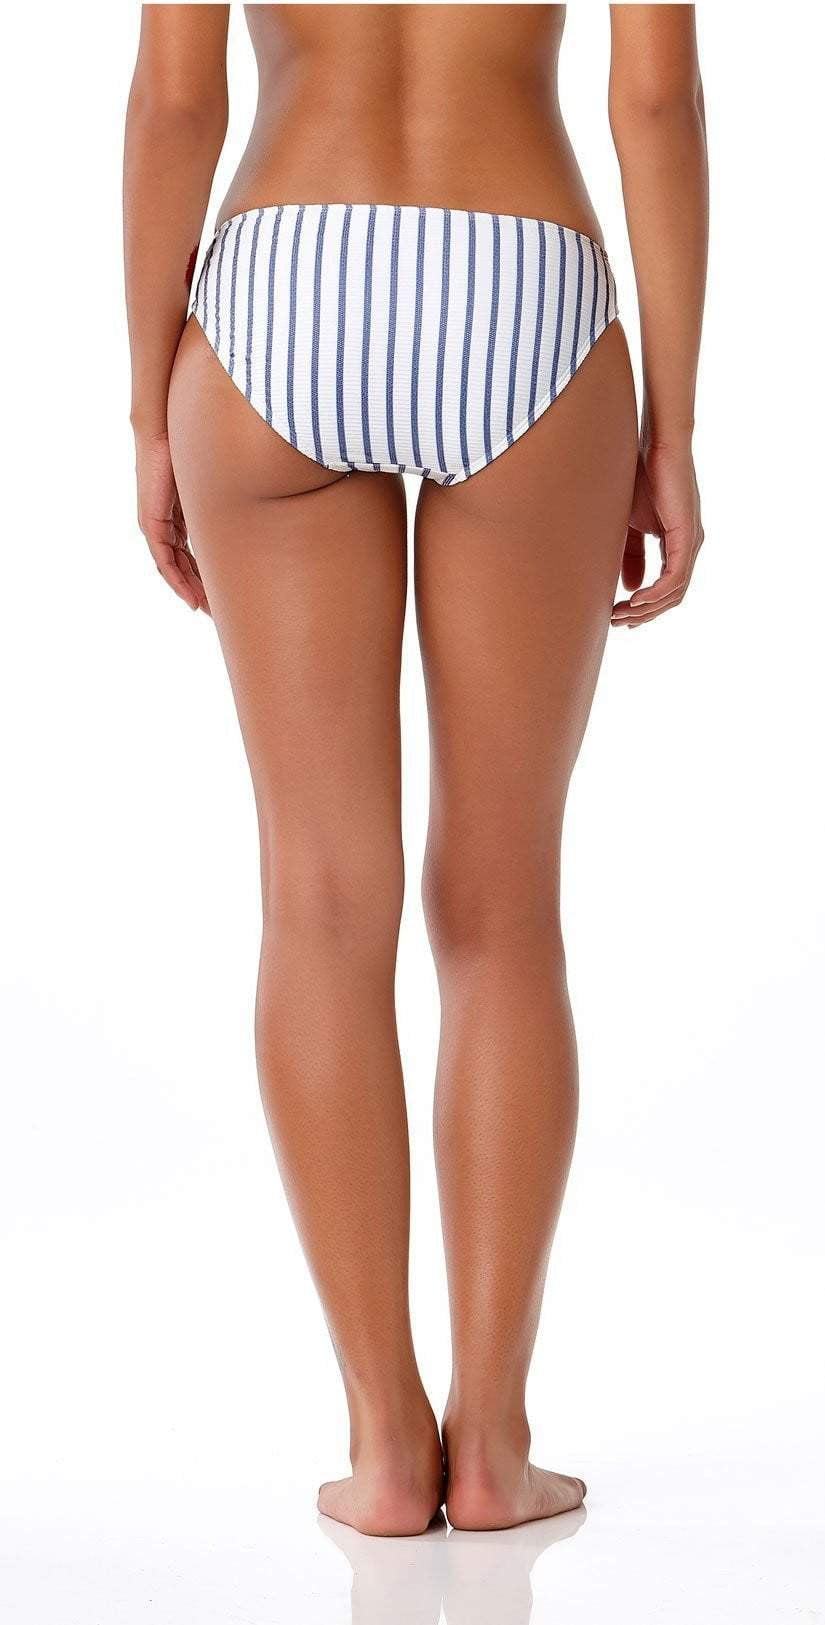 Anne Cole Studio Beach Bunny Full Bottom In Blue Stripe 18SB32202-BLST back